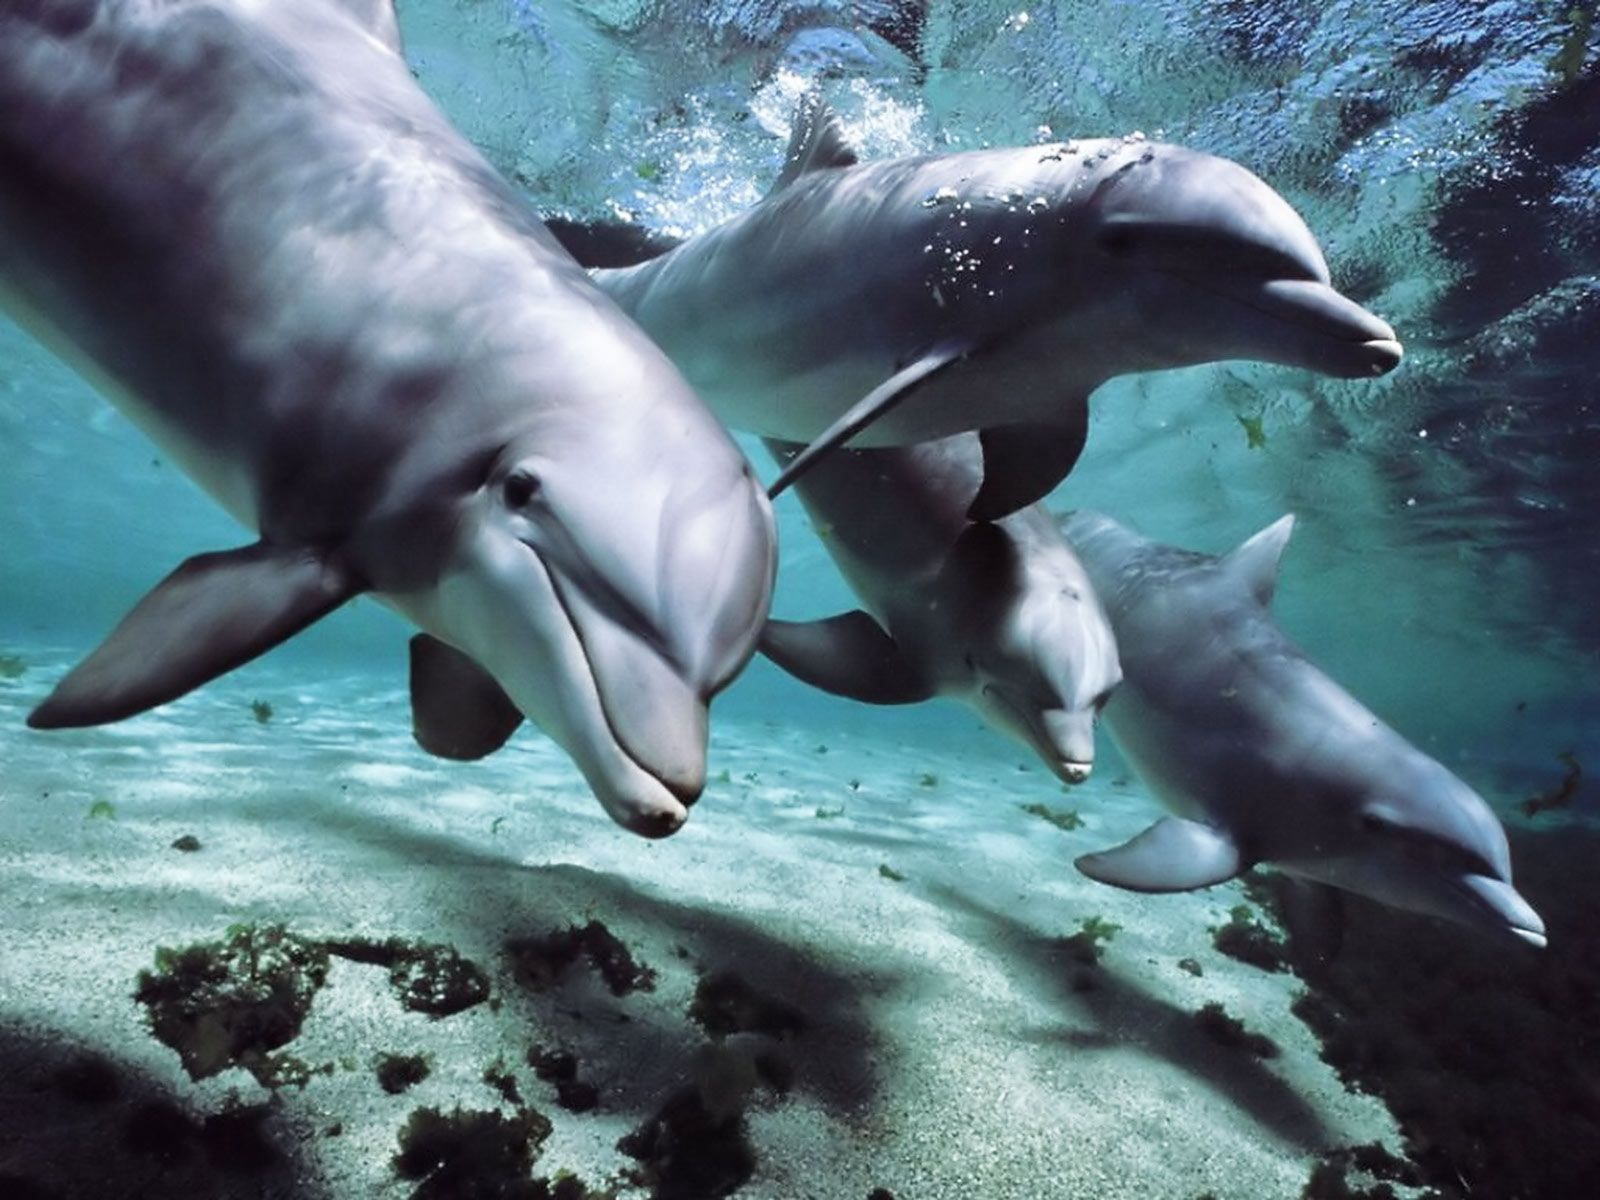 Jumping Dolphin Hd Desktop Wallpaper High Definition - Beautiful Pictures Of Animals And Nature - HD Wallpaper